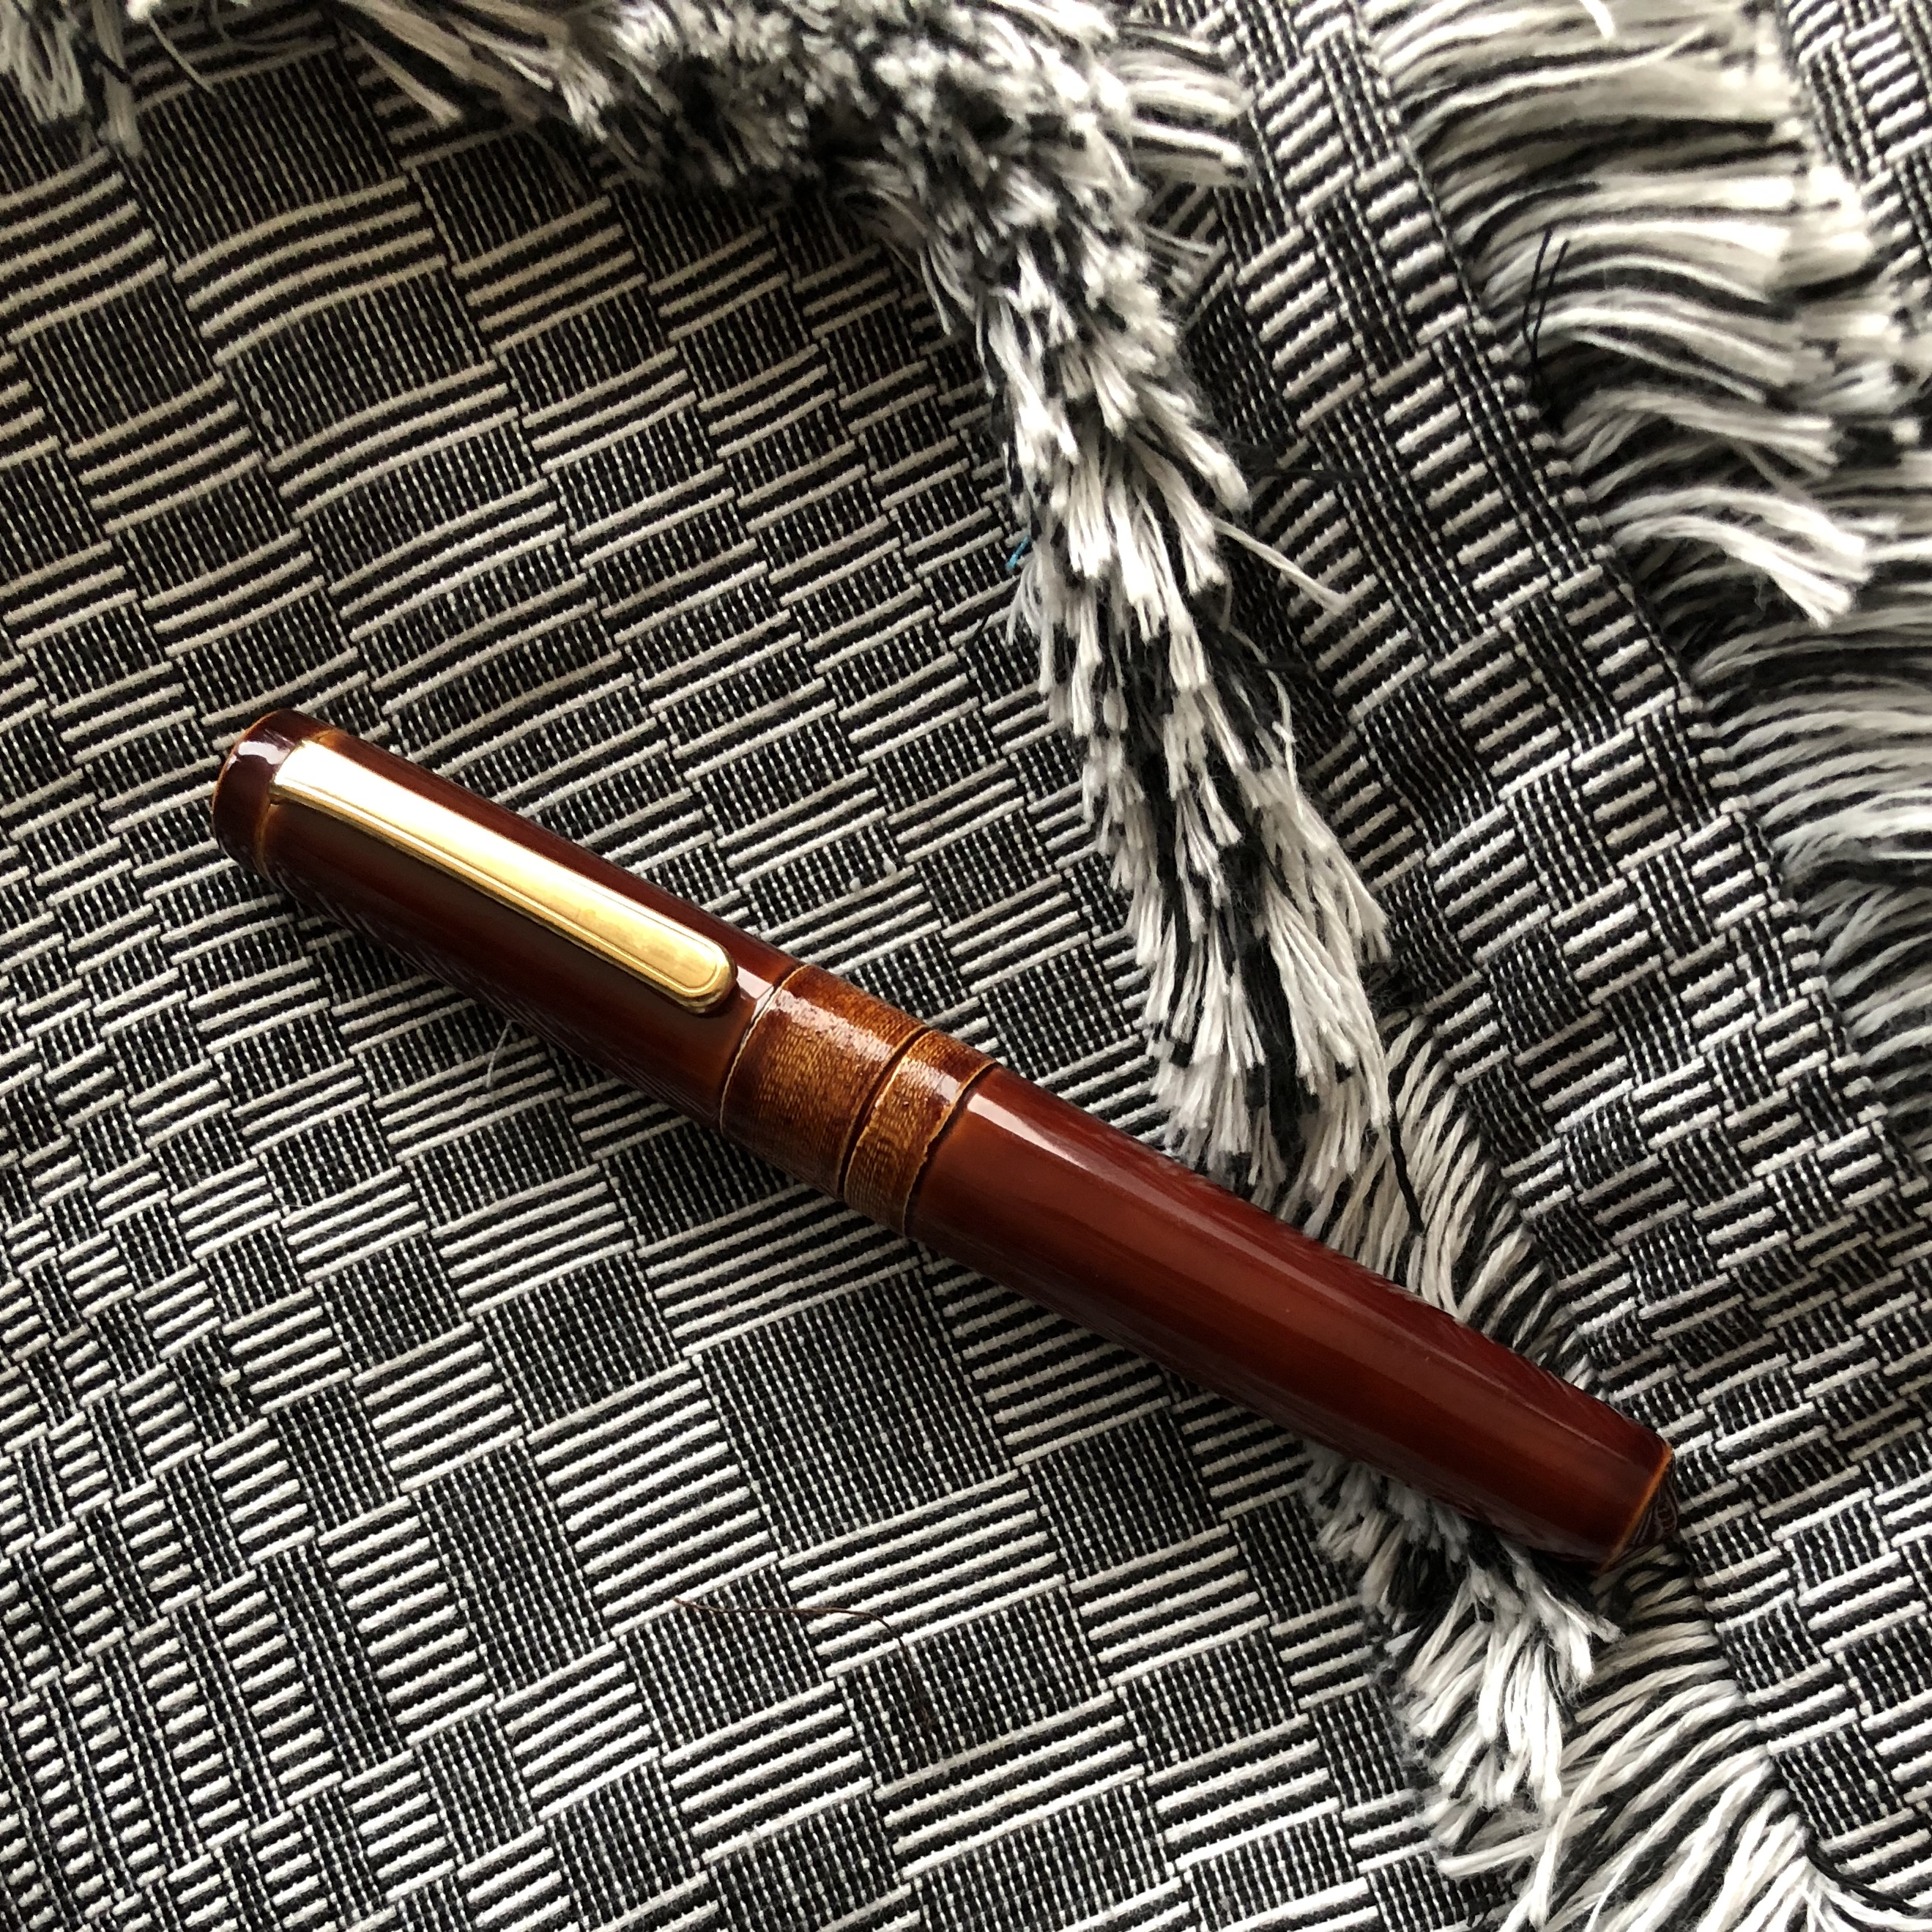 Nakaya Piccolo string-rolled on a binakul jacket from Anthill Fabric Gallery